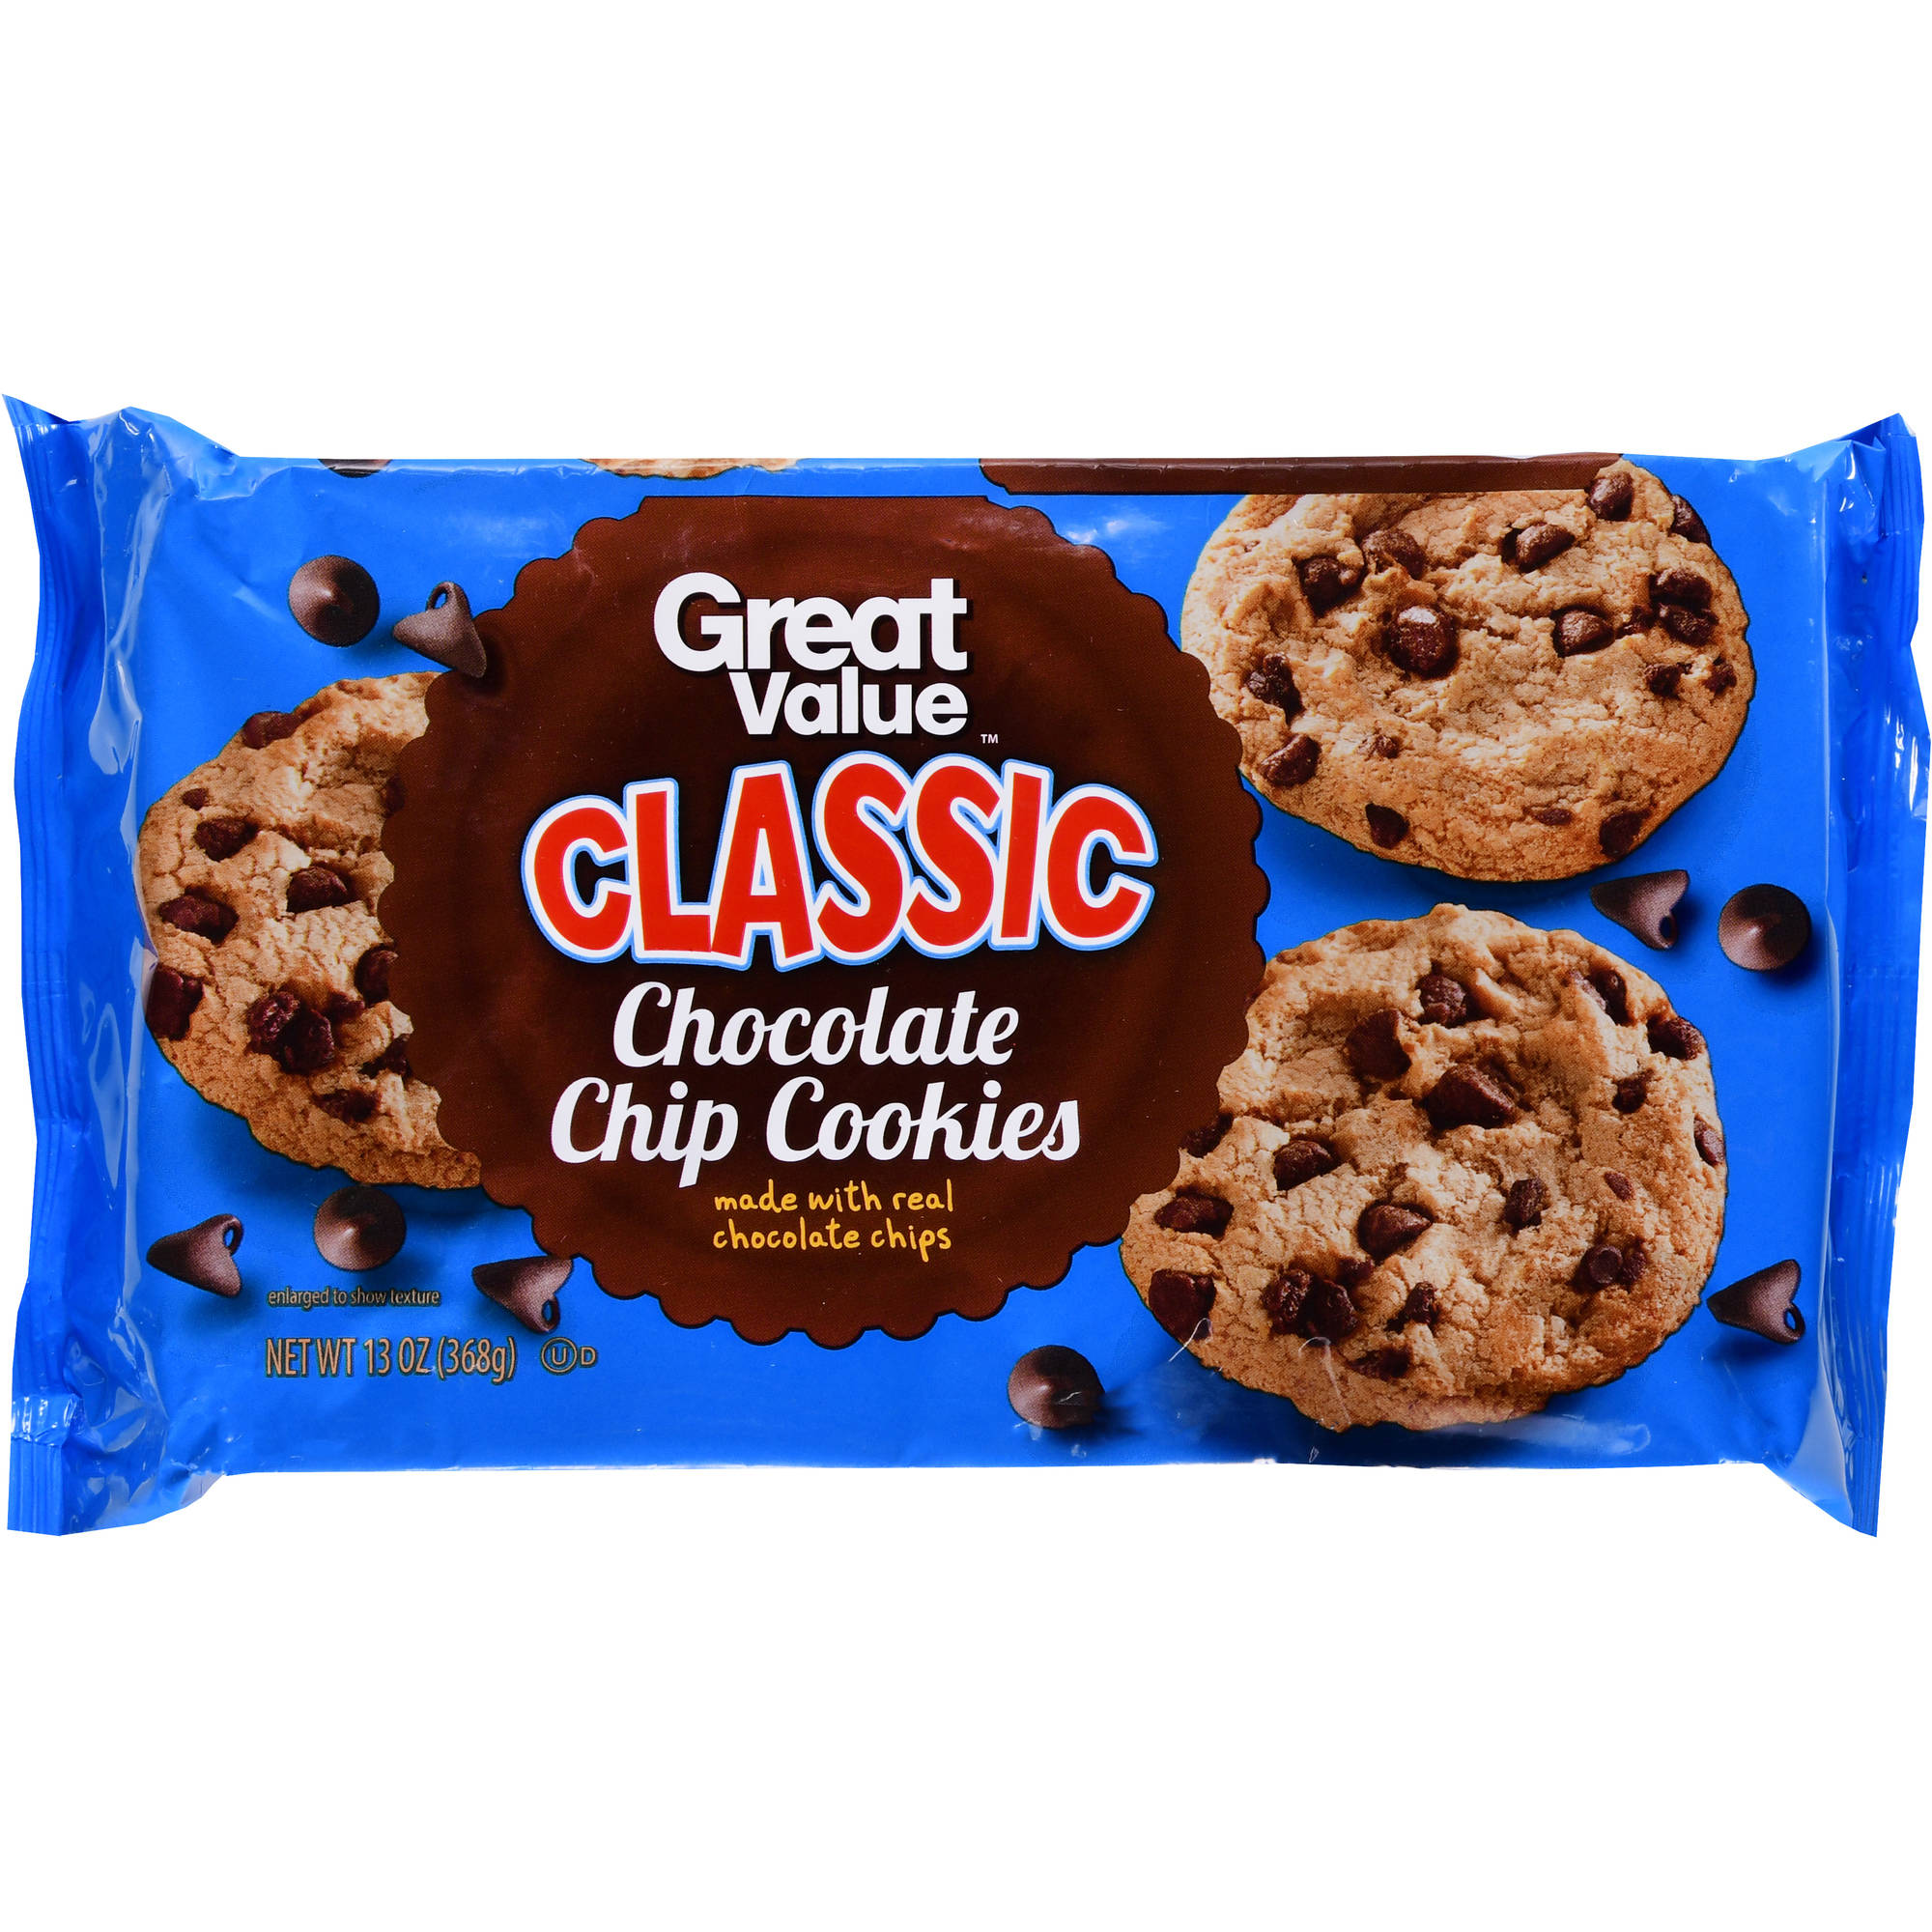 Great Value Chocolate Chip Cookies, 13.75 oz